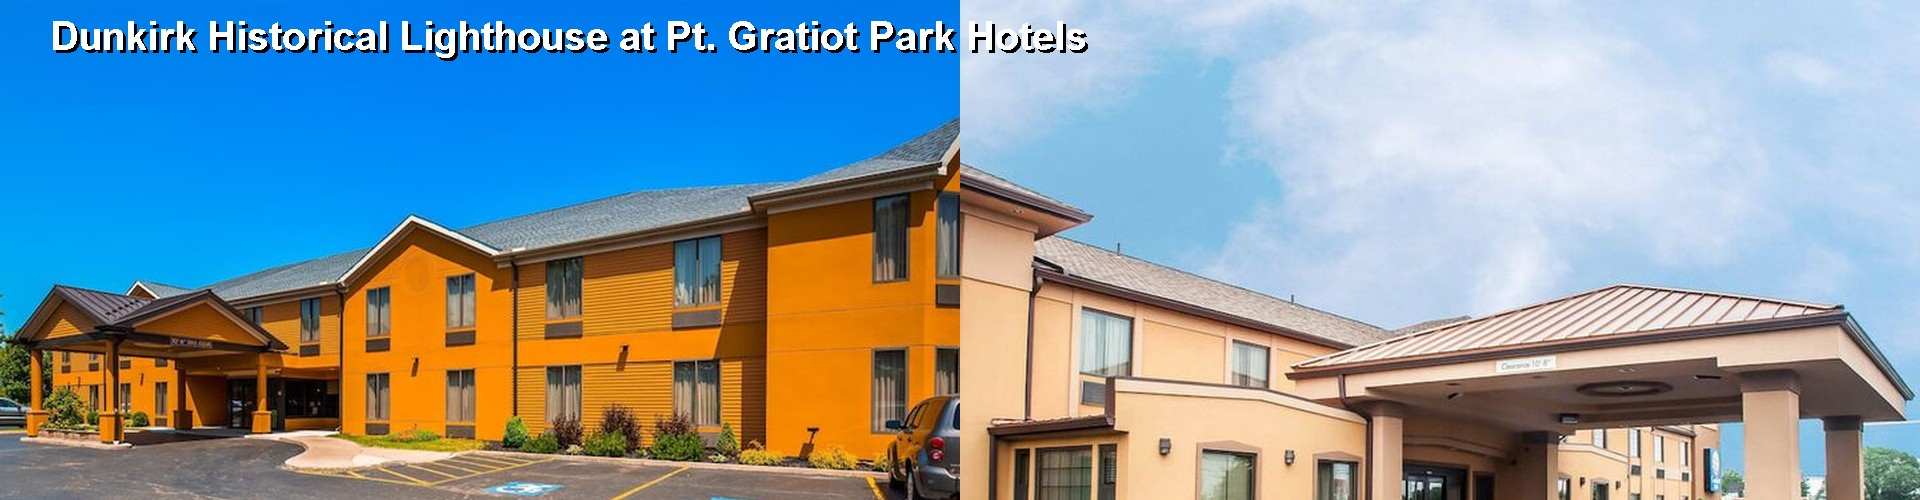 5 Best Hotels near Dunkirk Historical Lighthouse at Pt. Gratiot Park